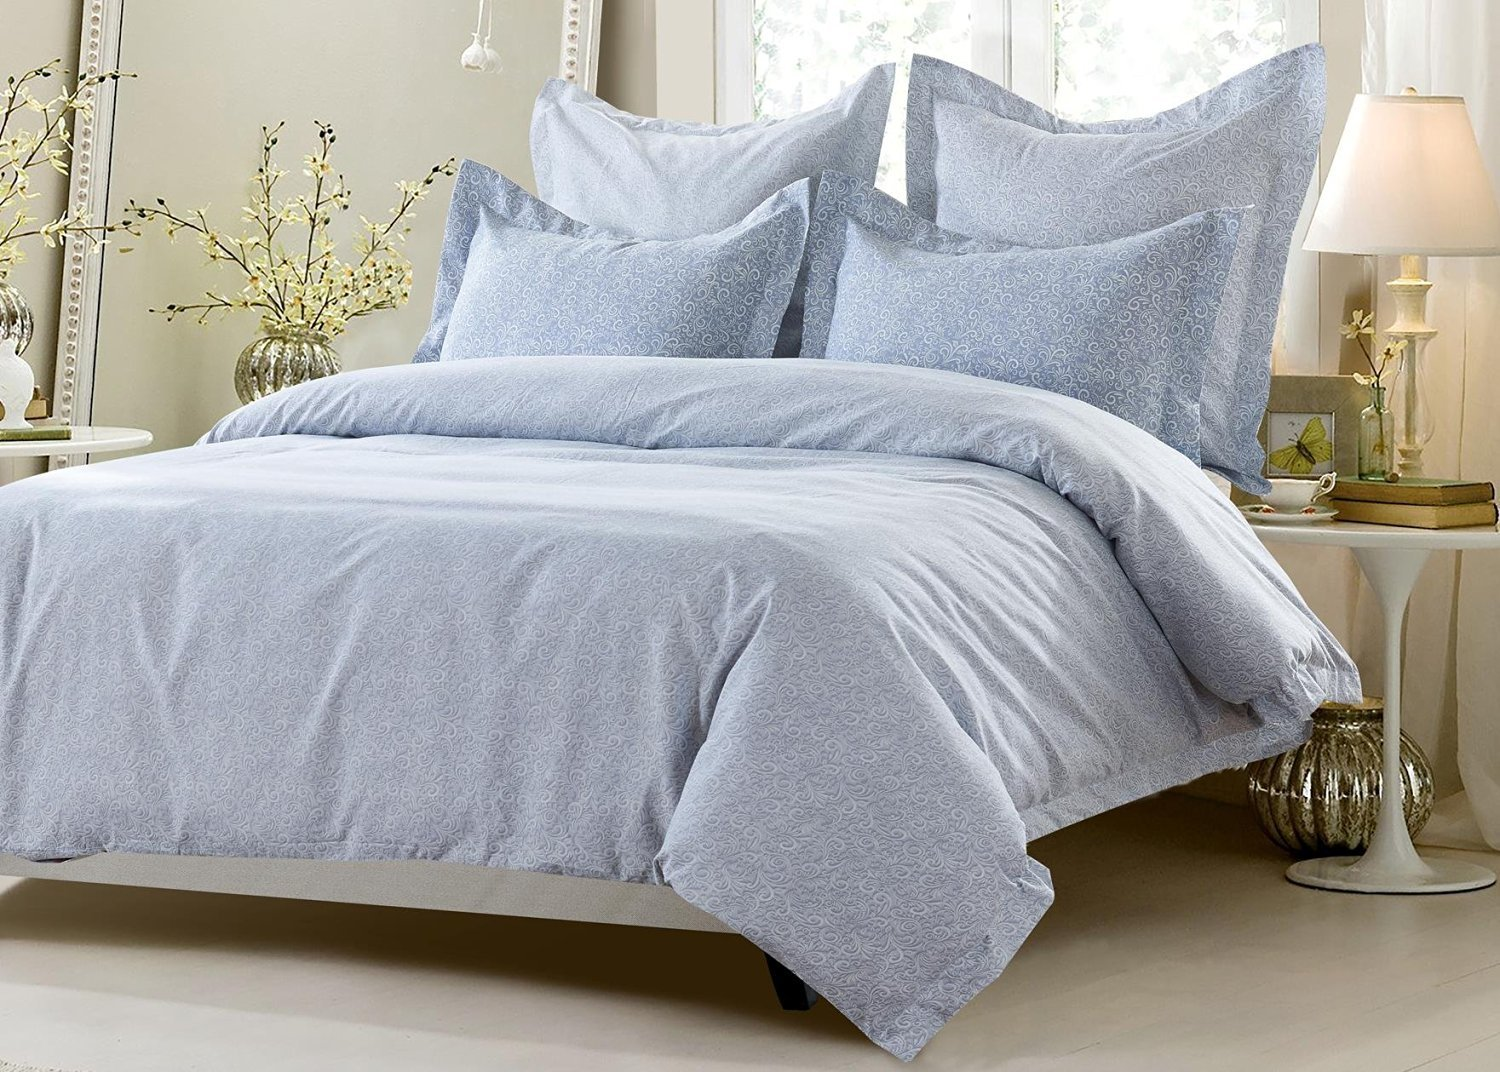 luluandnat elephant and cover nat duvets for sale product by duvet single lulu grey original